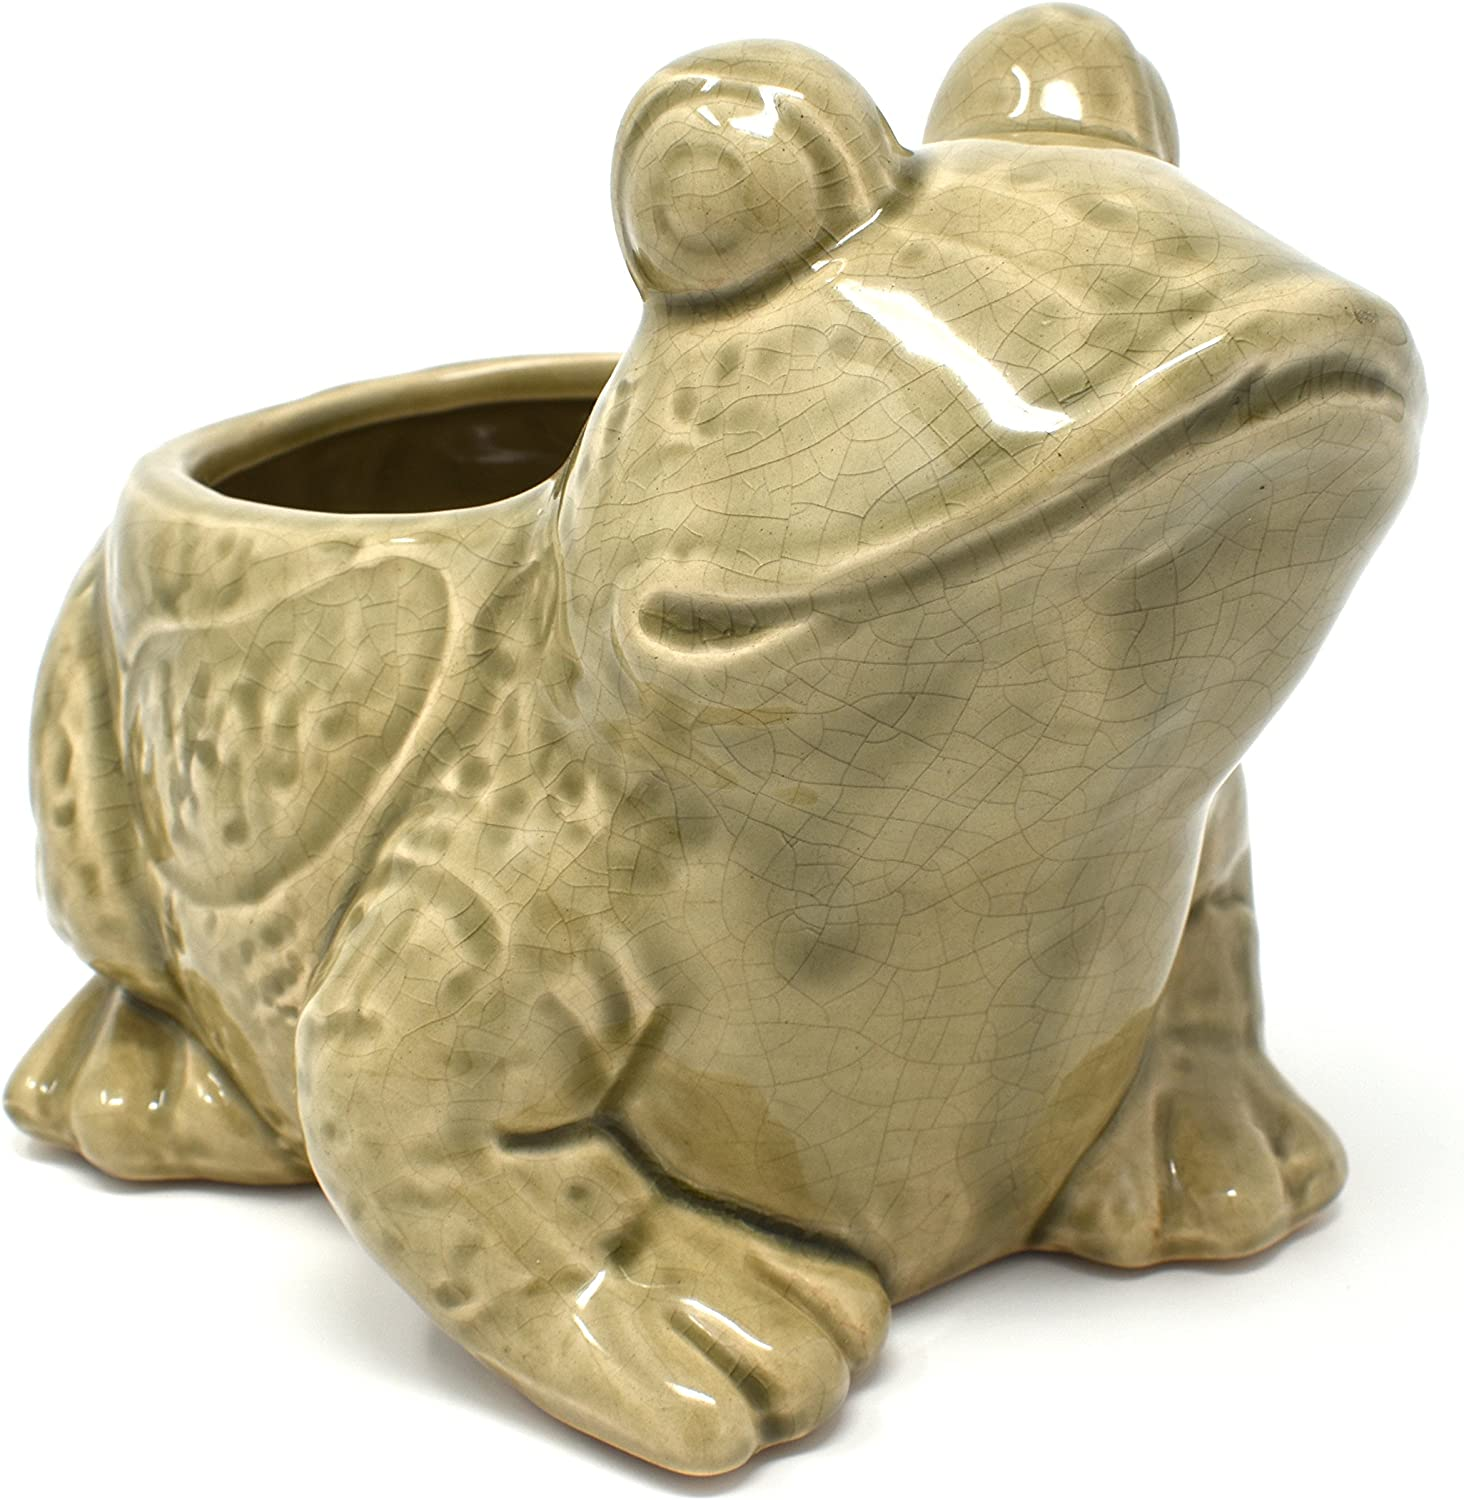 Broad Sierra-Frog Planter Pot-Great for Succulents and Small Plants-Indoor Outdoor Mocha